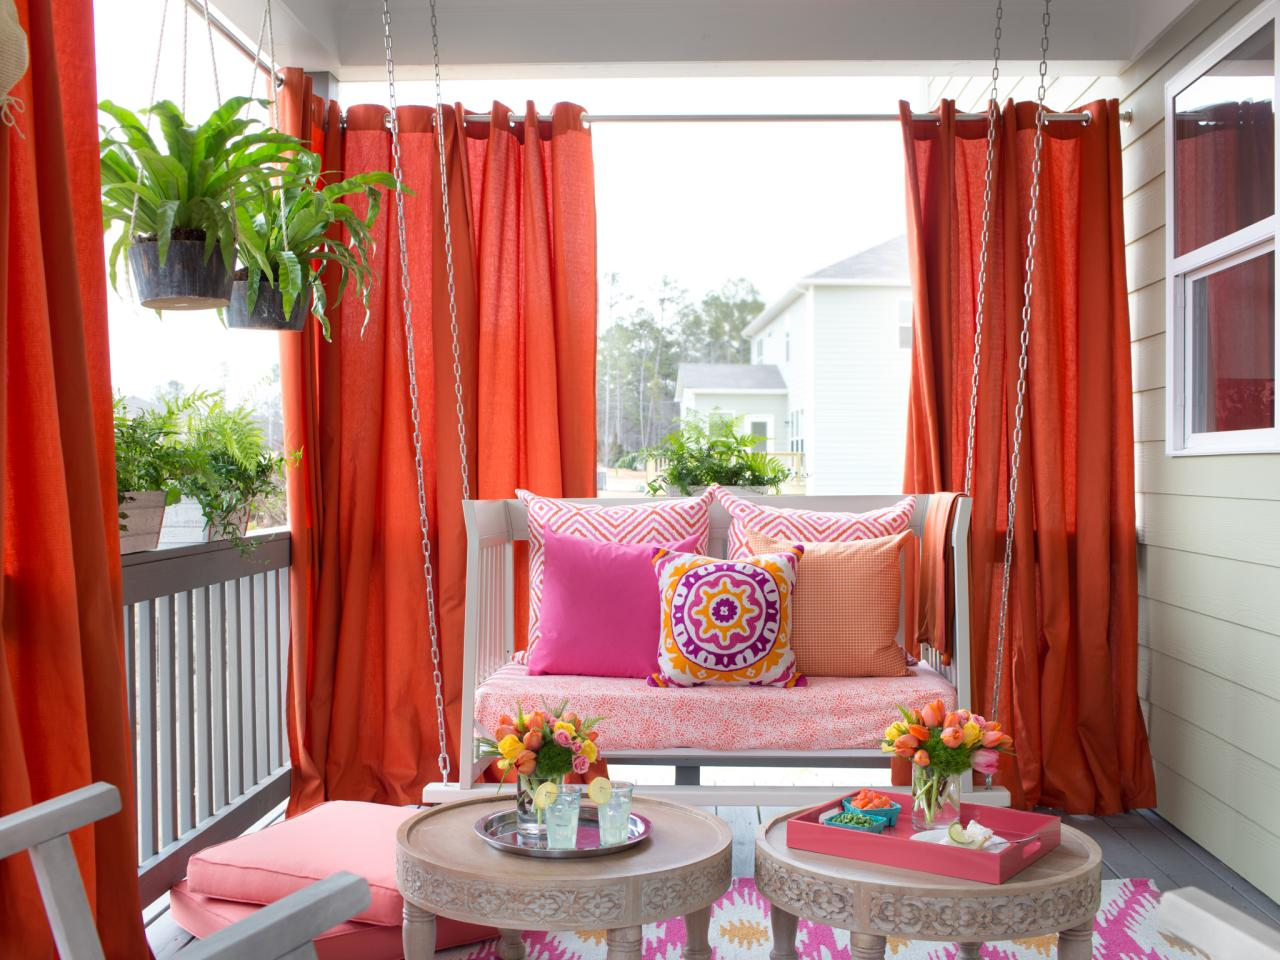 Install outdoor curtains